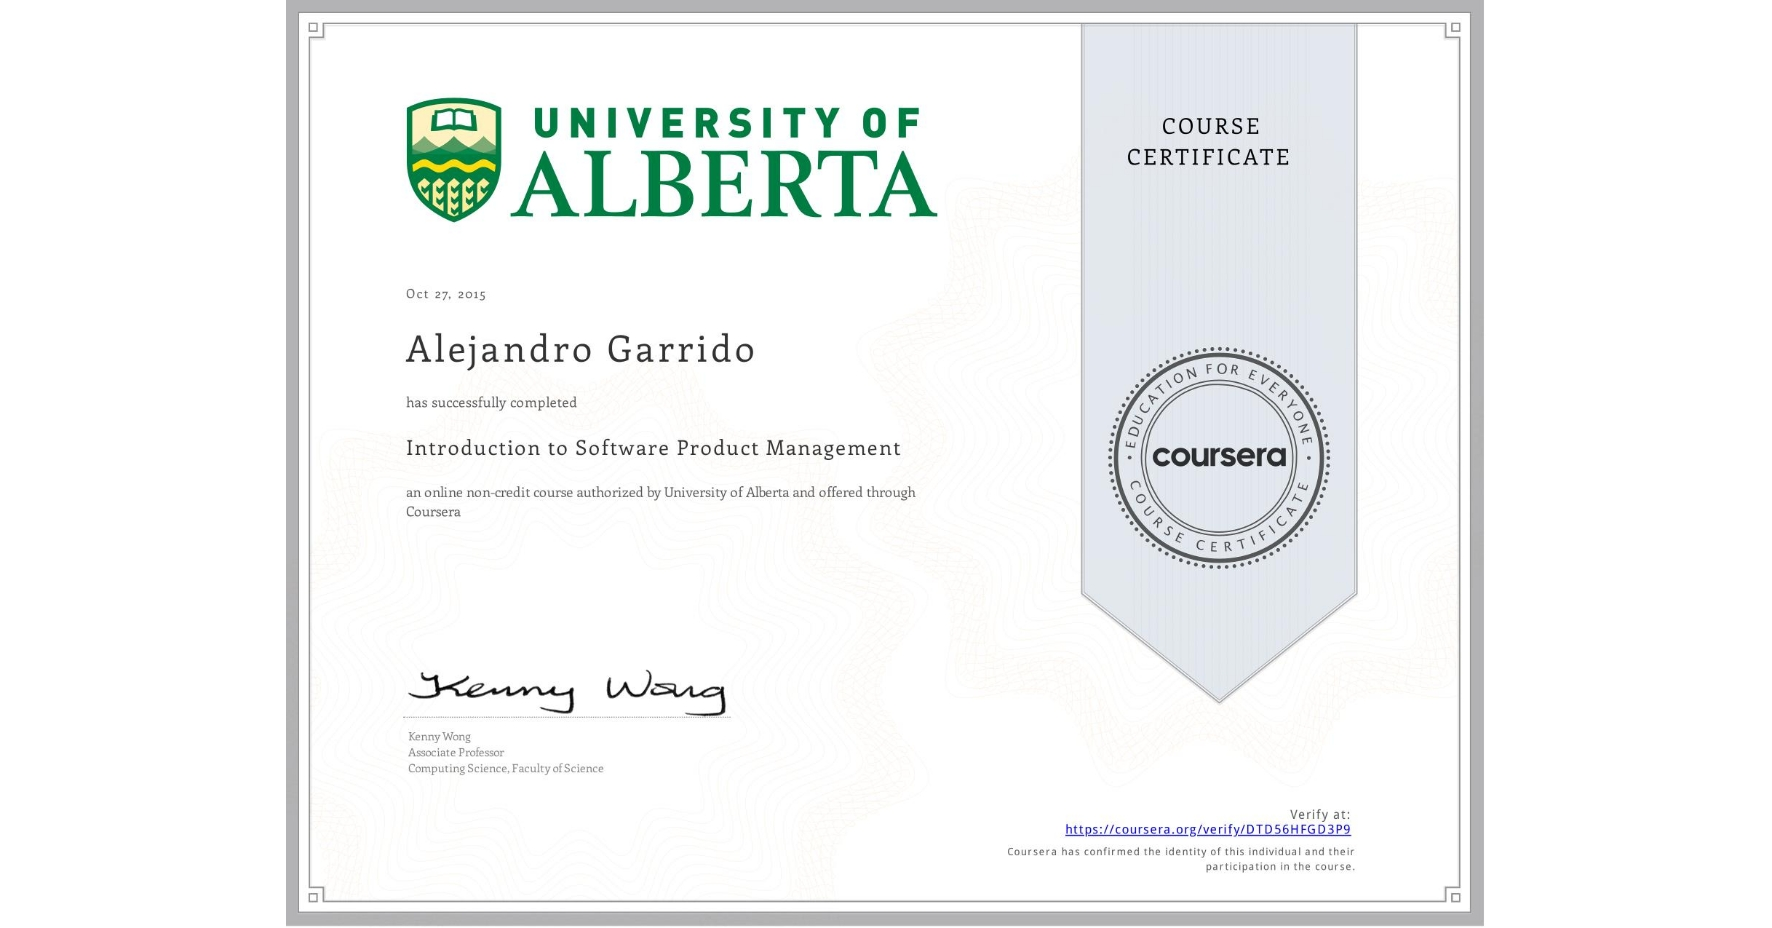 View certificate for Alejandro Garrido Mota, Introduction to Software Product Management, an online non-credit course authorized by University of Alberta and offered through Coursera